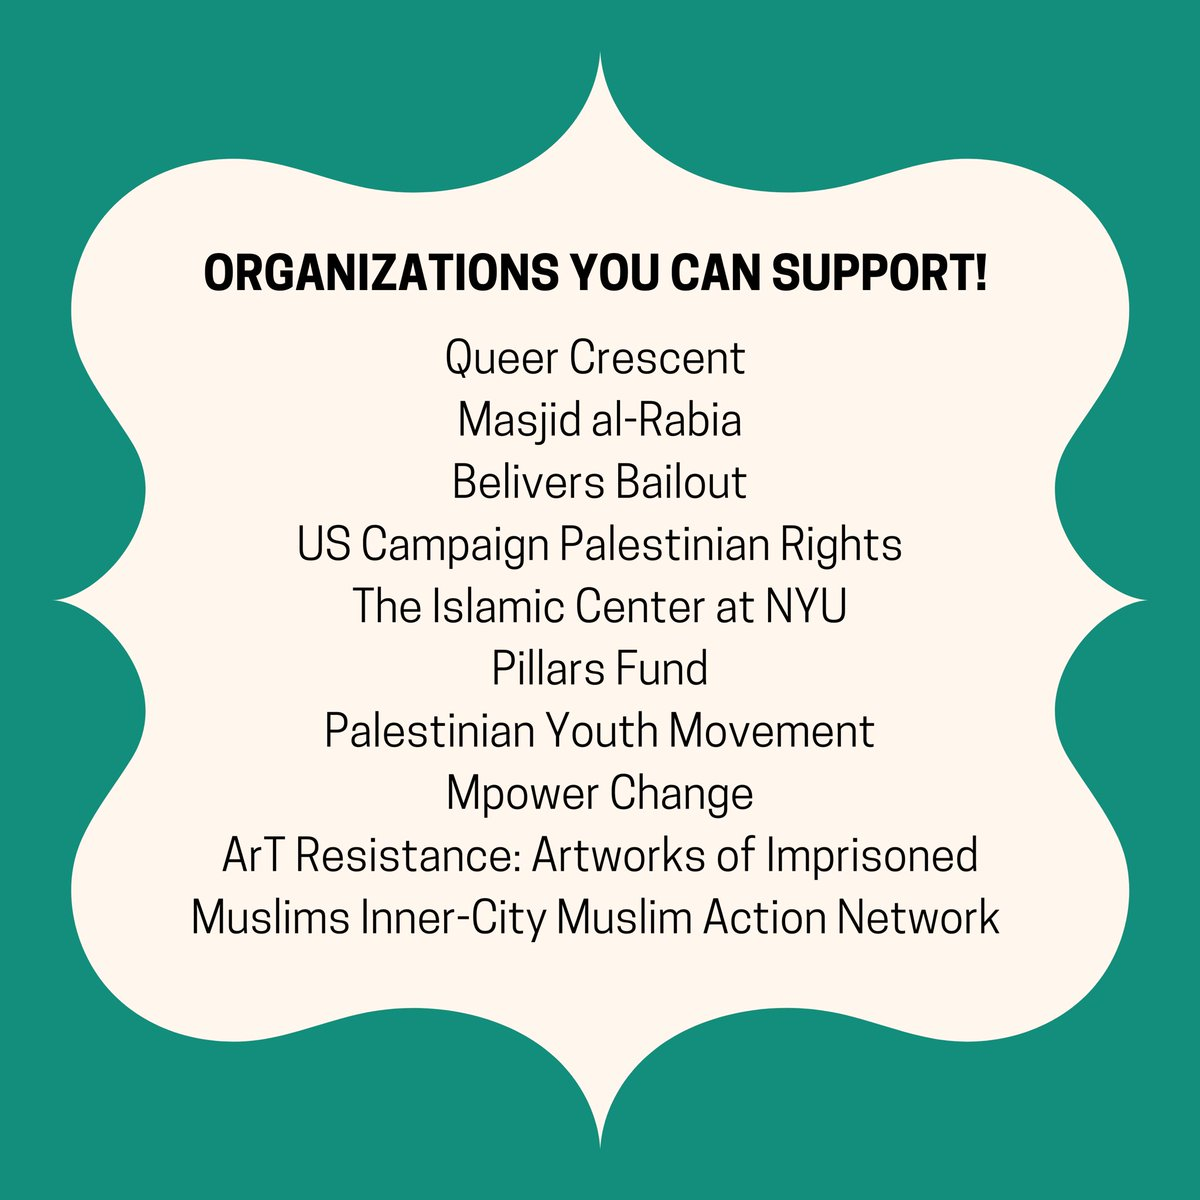 amazing organizations you can support that directly impacts Muslim communities #Ramadan